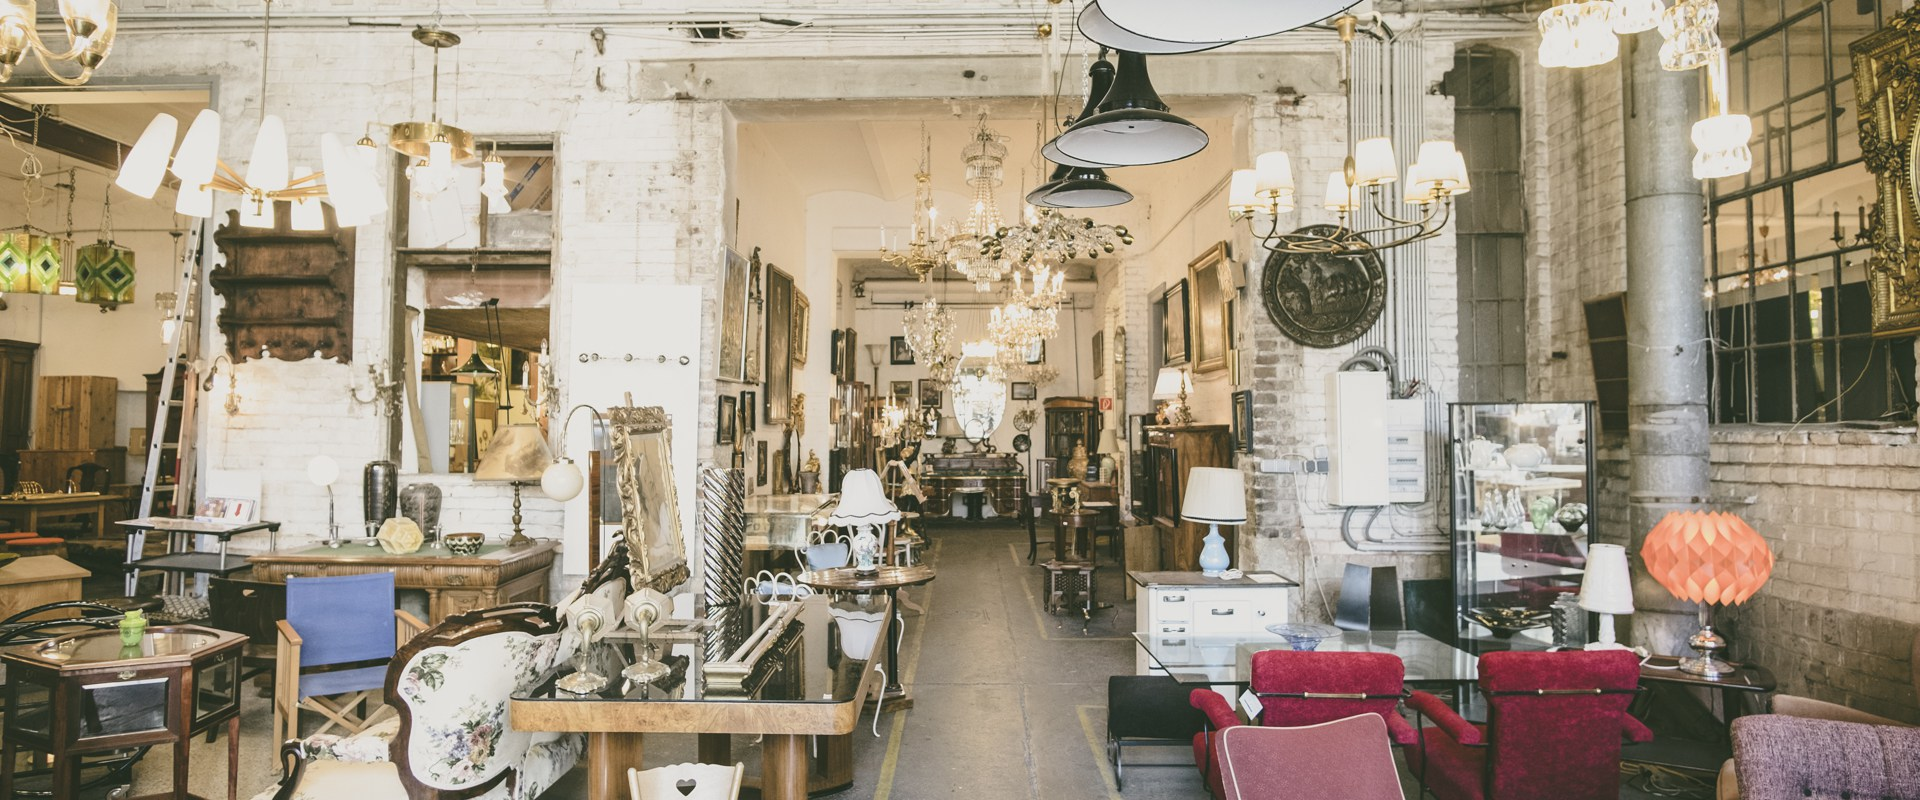 Time To Pack Your Bags And Visit The Best Lighting Stores In Vienna Lighting Stores In Vienna Time To Pack Your Bags And Visit The Best Lighting Stores In Vienna Time To Pack Your Bags And Visit The Best Lighting Stores In Vienna